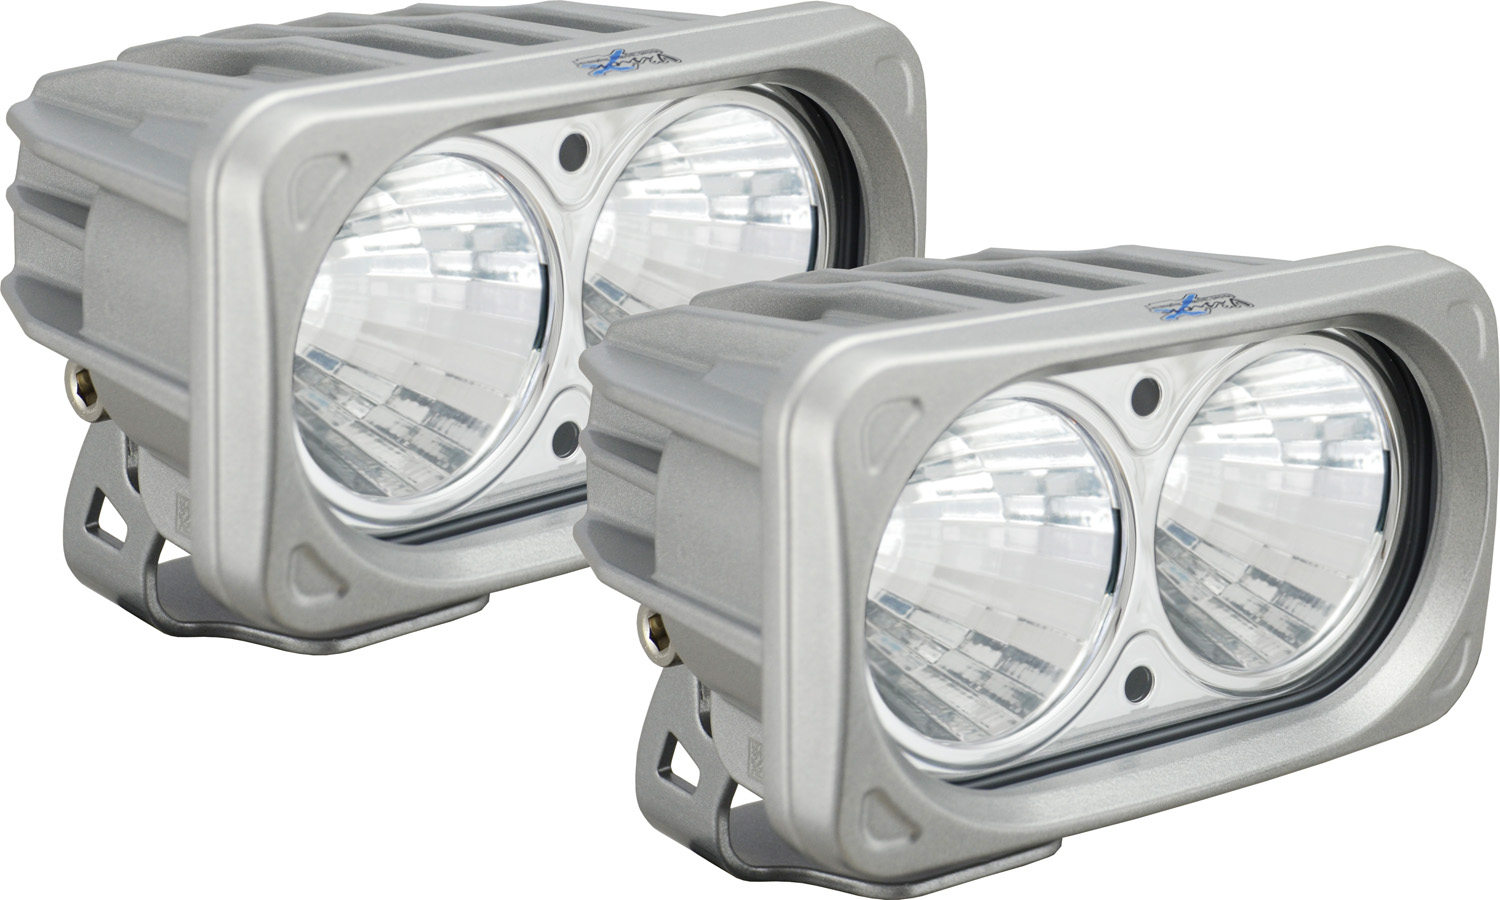 OPTIMUS SQUARE SILVER 2 10W LEDS 20° MEDIUM KIT OF 2 LIGHTS